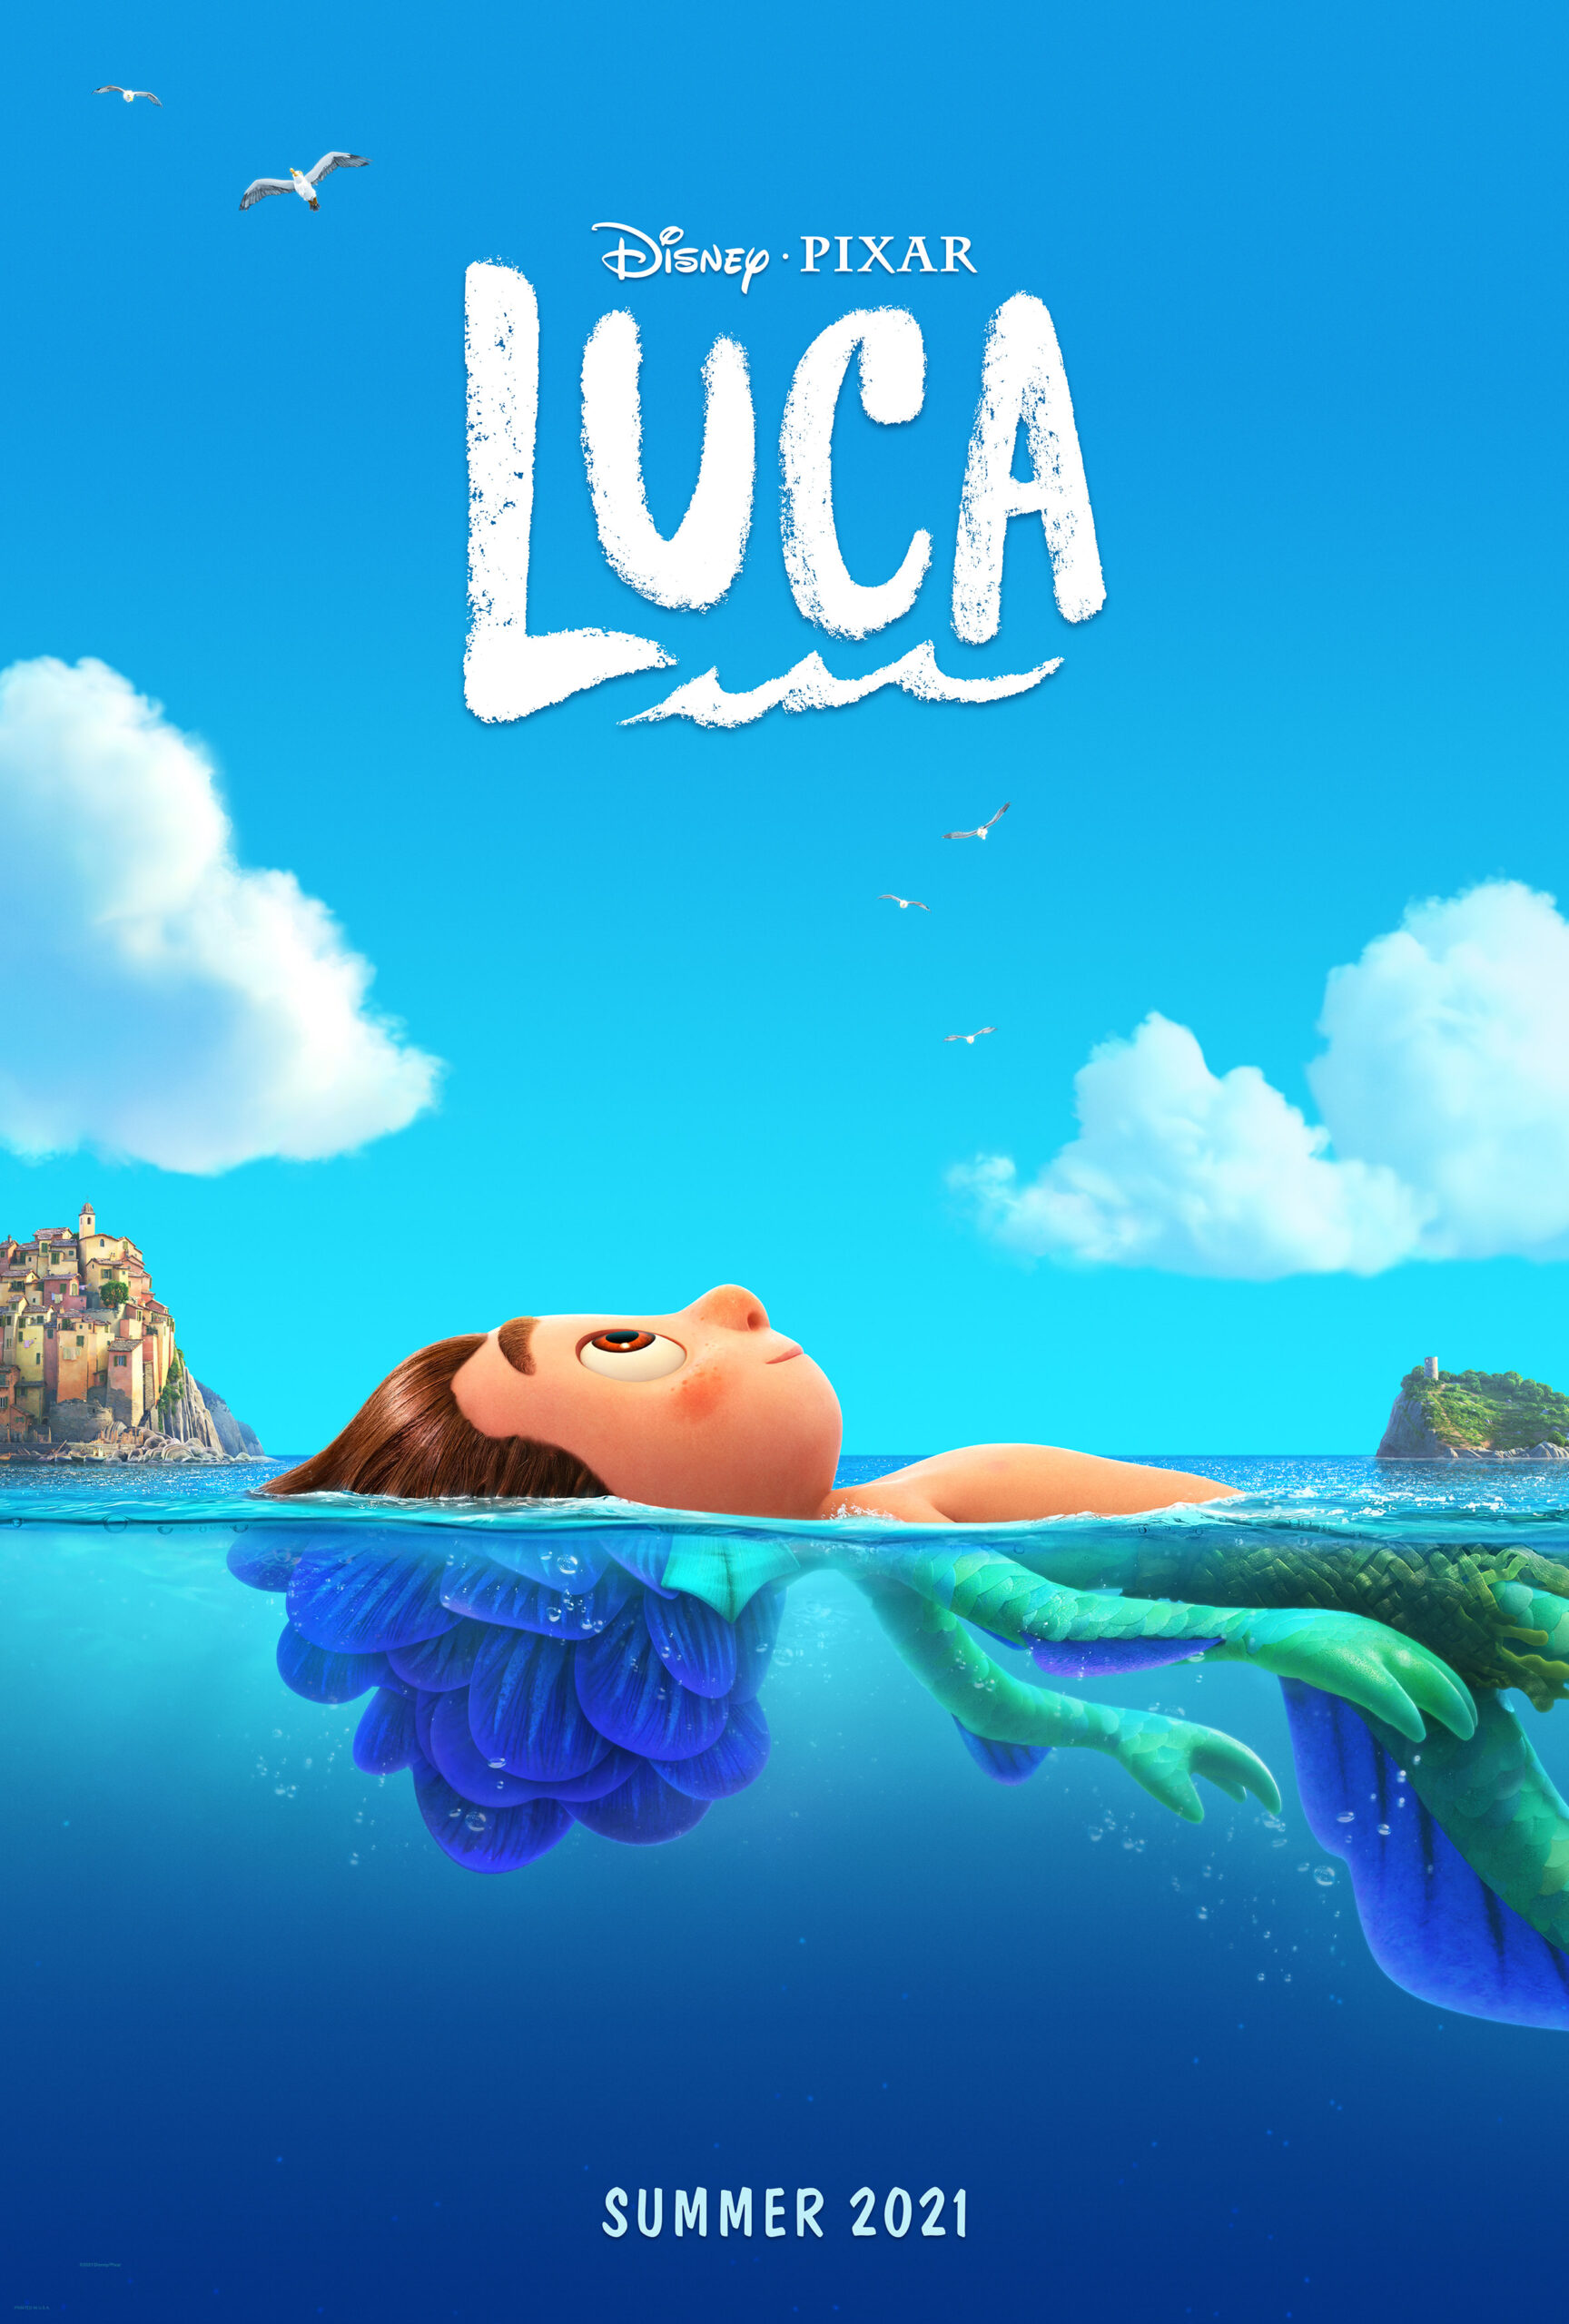 As we approach the release of Pixar Luca, let's dive into the location of the film......and regardless of where you are watching it, what to buy to celebrate all things Luca and Italy.